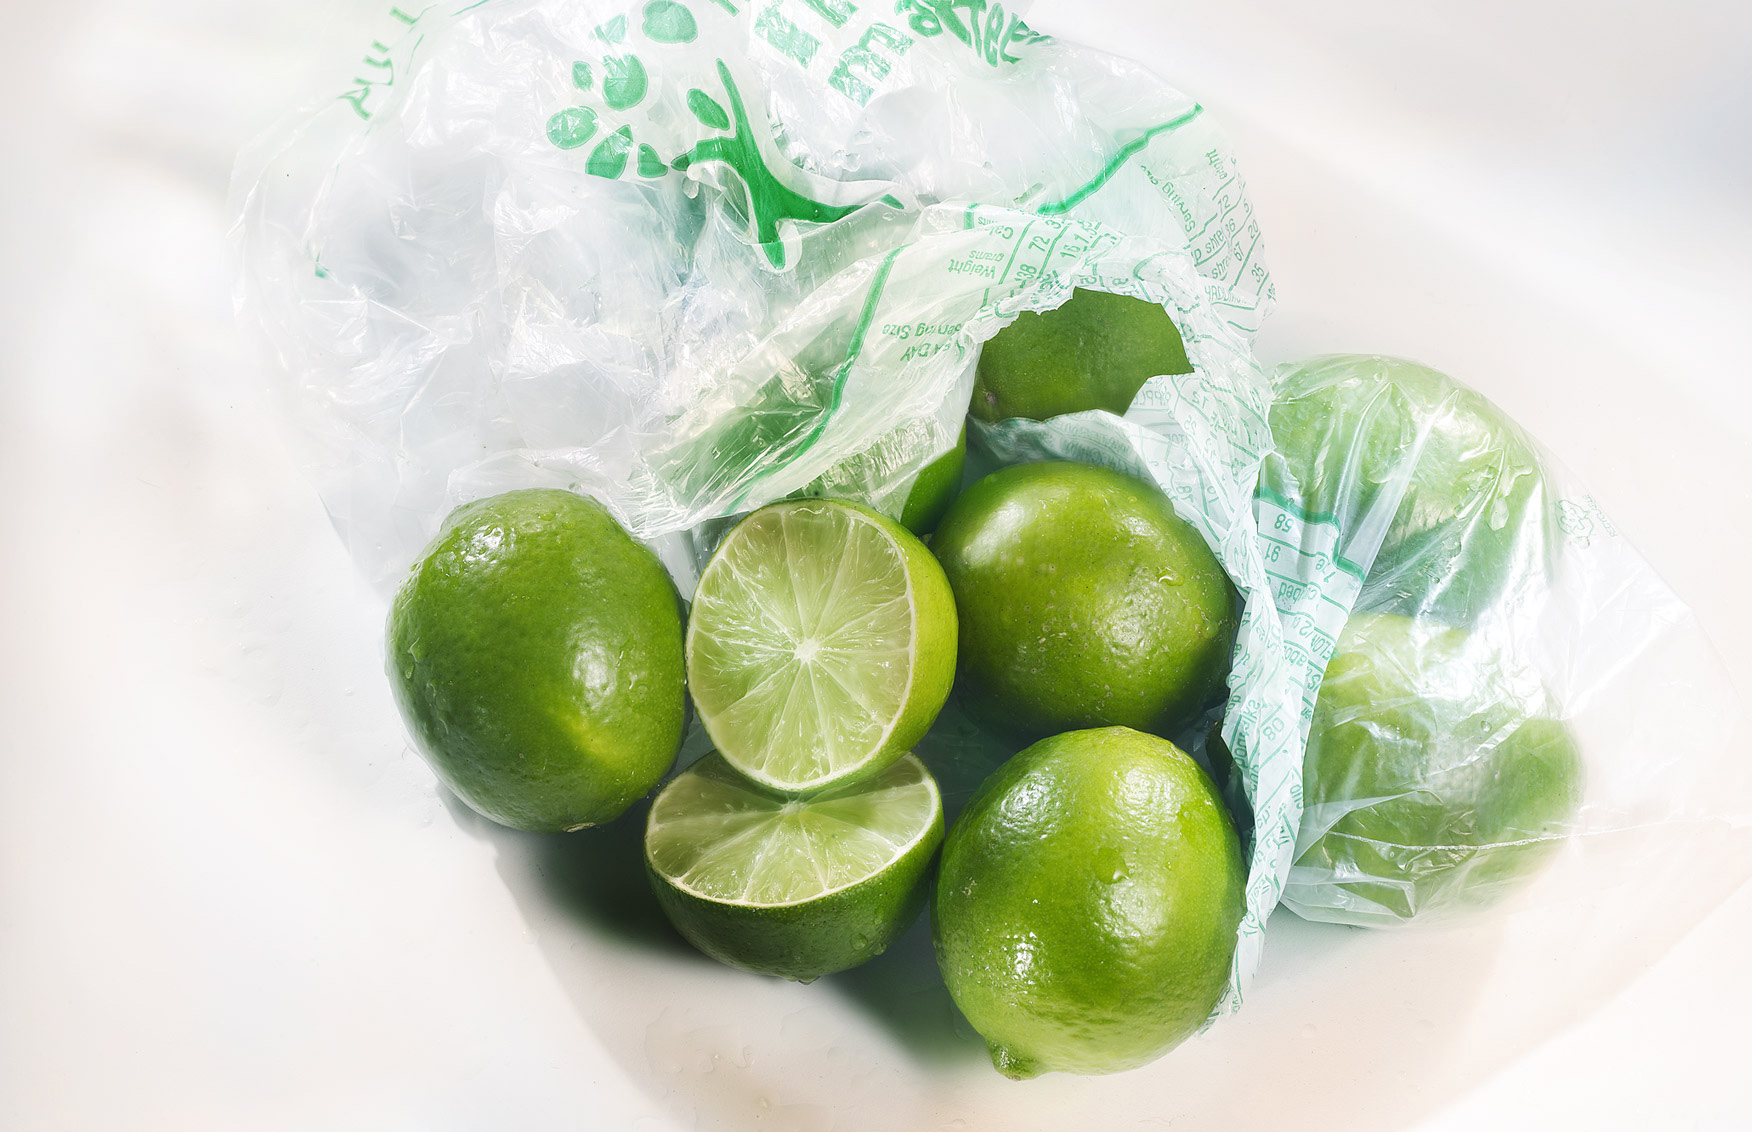 whole fresh green Limes in supermarket plastic bag with signature lighting